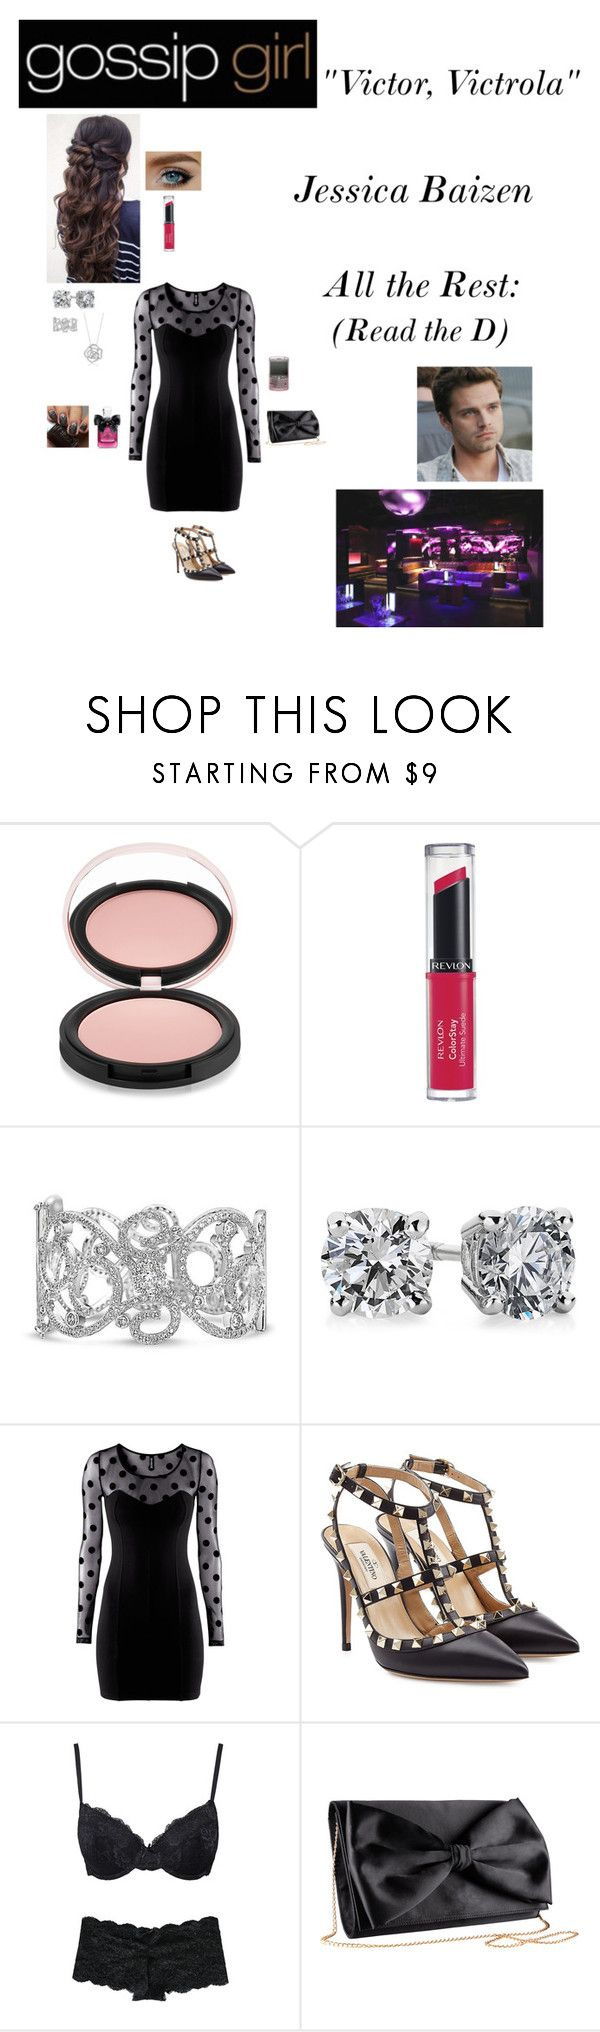 """""""Gossip Girl - S1E7 - *Victor, Victrola*"""" by c-a-marie2000 ❤ liked on Polyvore featuring Estelle & Thild, Revlon, Juicy Couture, Sebastian Professional, Bling Jewelry, Blue Nile, H&M, Valentino, Marie Meili and BERRICLE"""